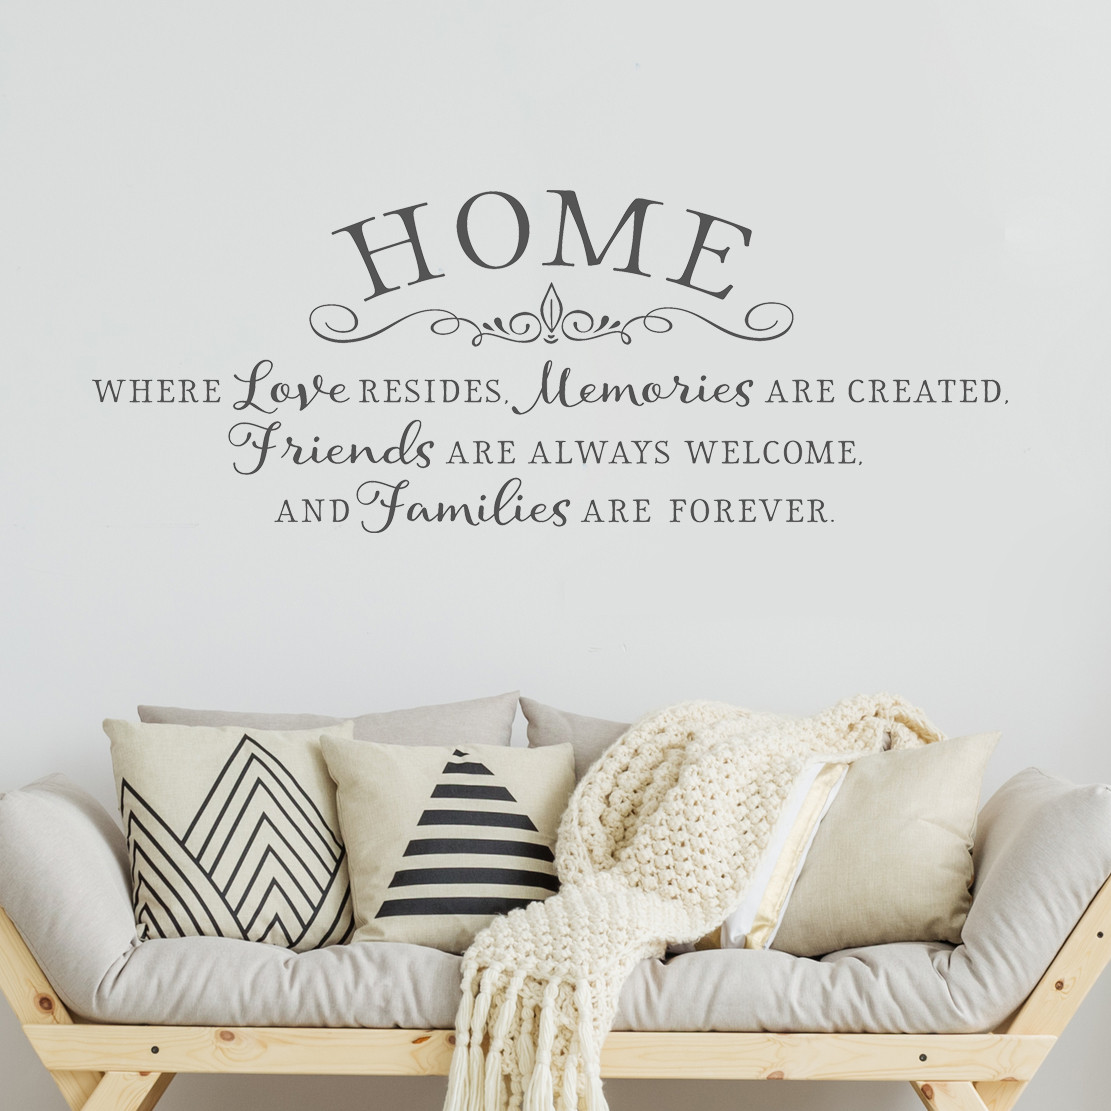 FAMILY INSPIRATIONAL QUOTE STUNNING FRAMED LIFE LIKE ...